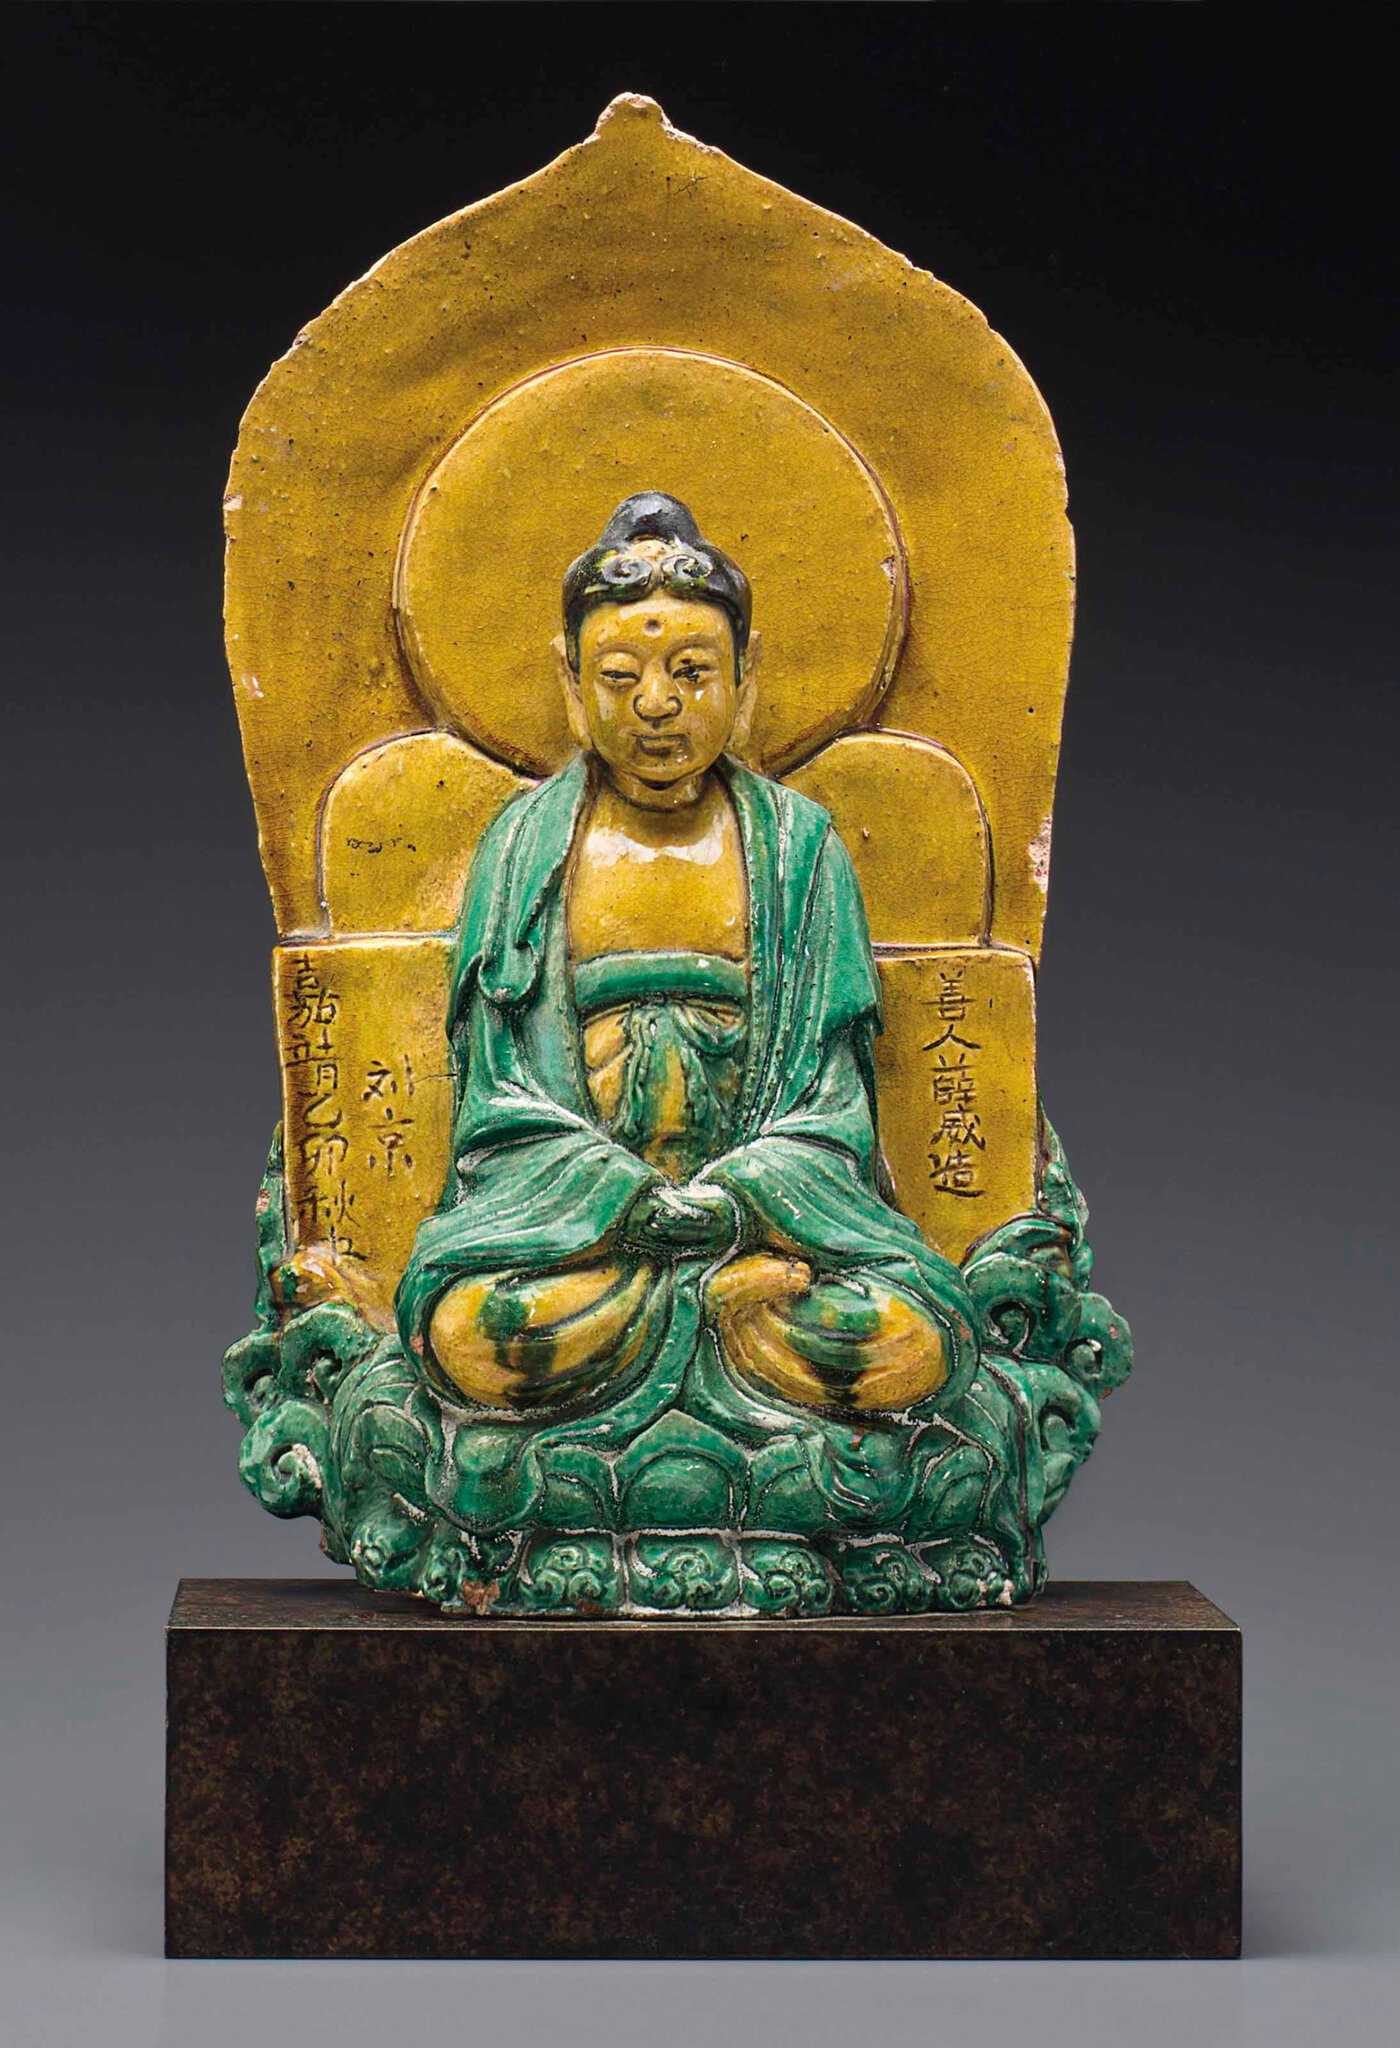 A datedsancai-glazed stoneware figure of Buddha, dated to mid-autumn of theyimaoyear of Jiajing, corresponding to 1555, and of the period